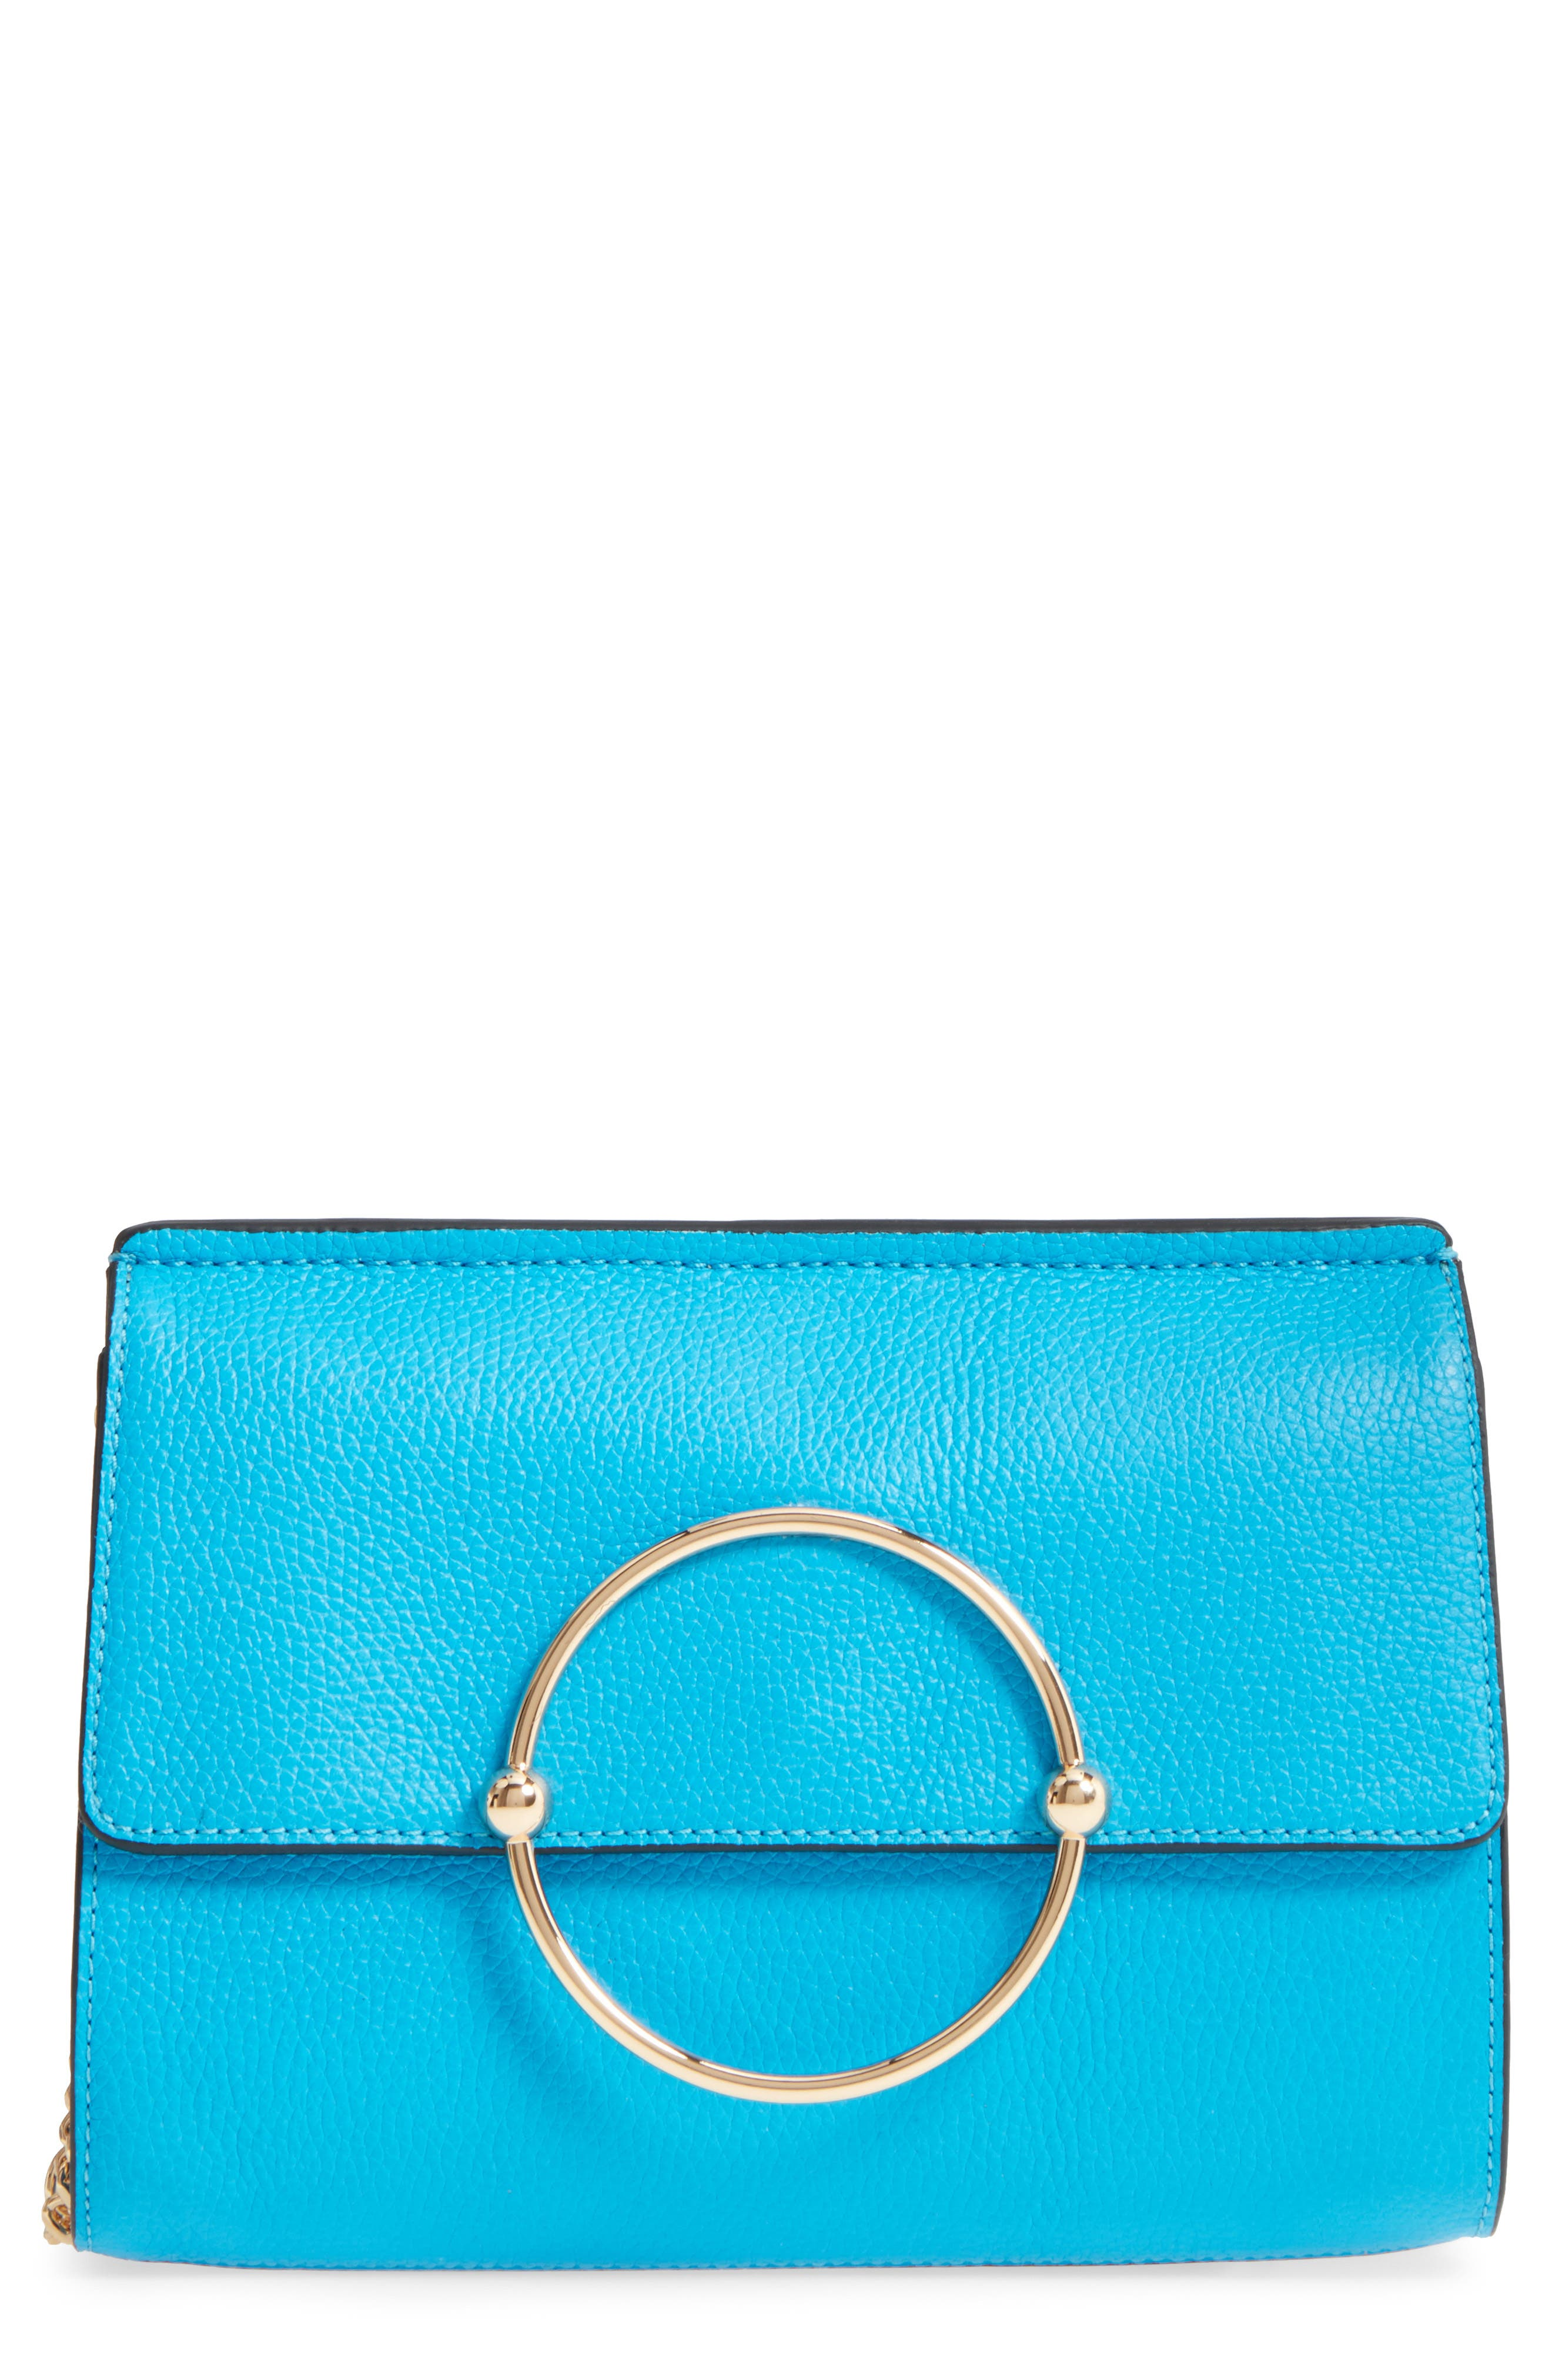 Alternate Image 1 Selected - Milly Astor Pebbled Leather Flap Clutch